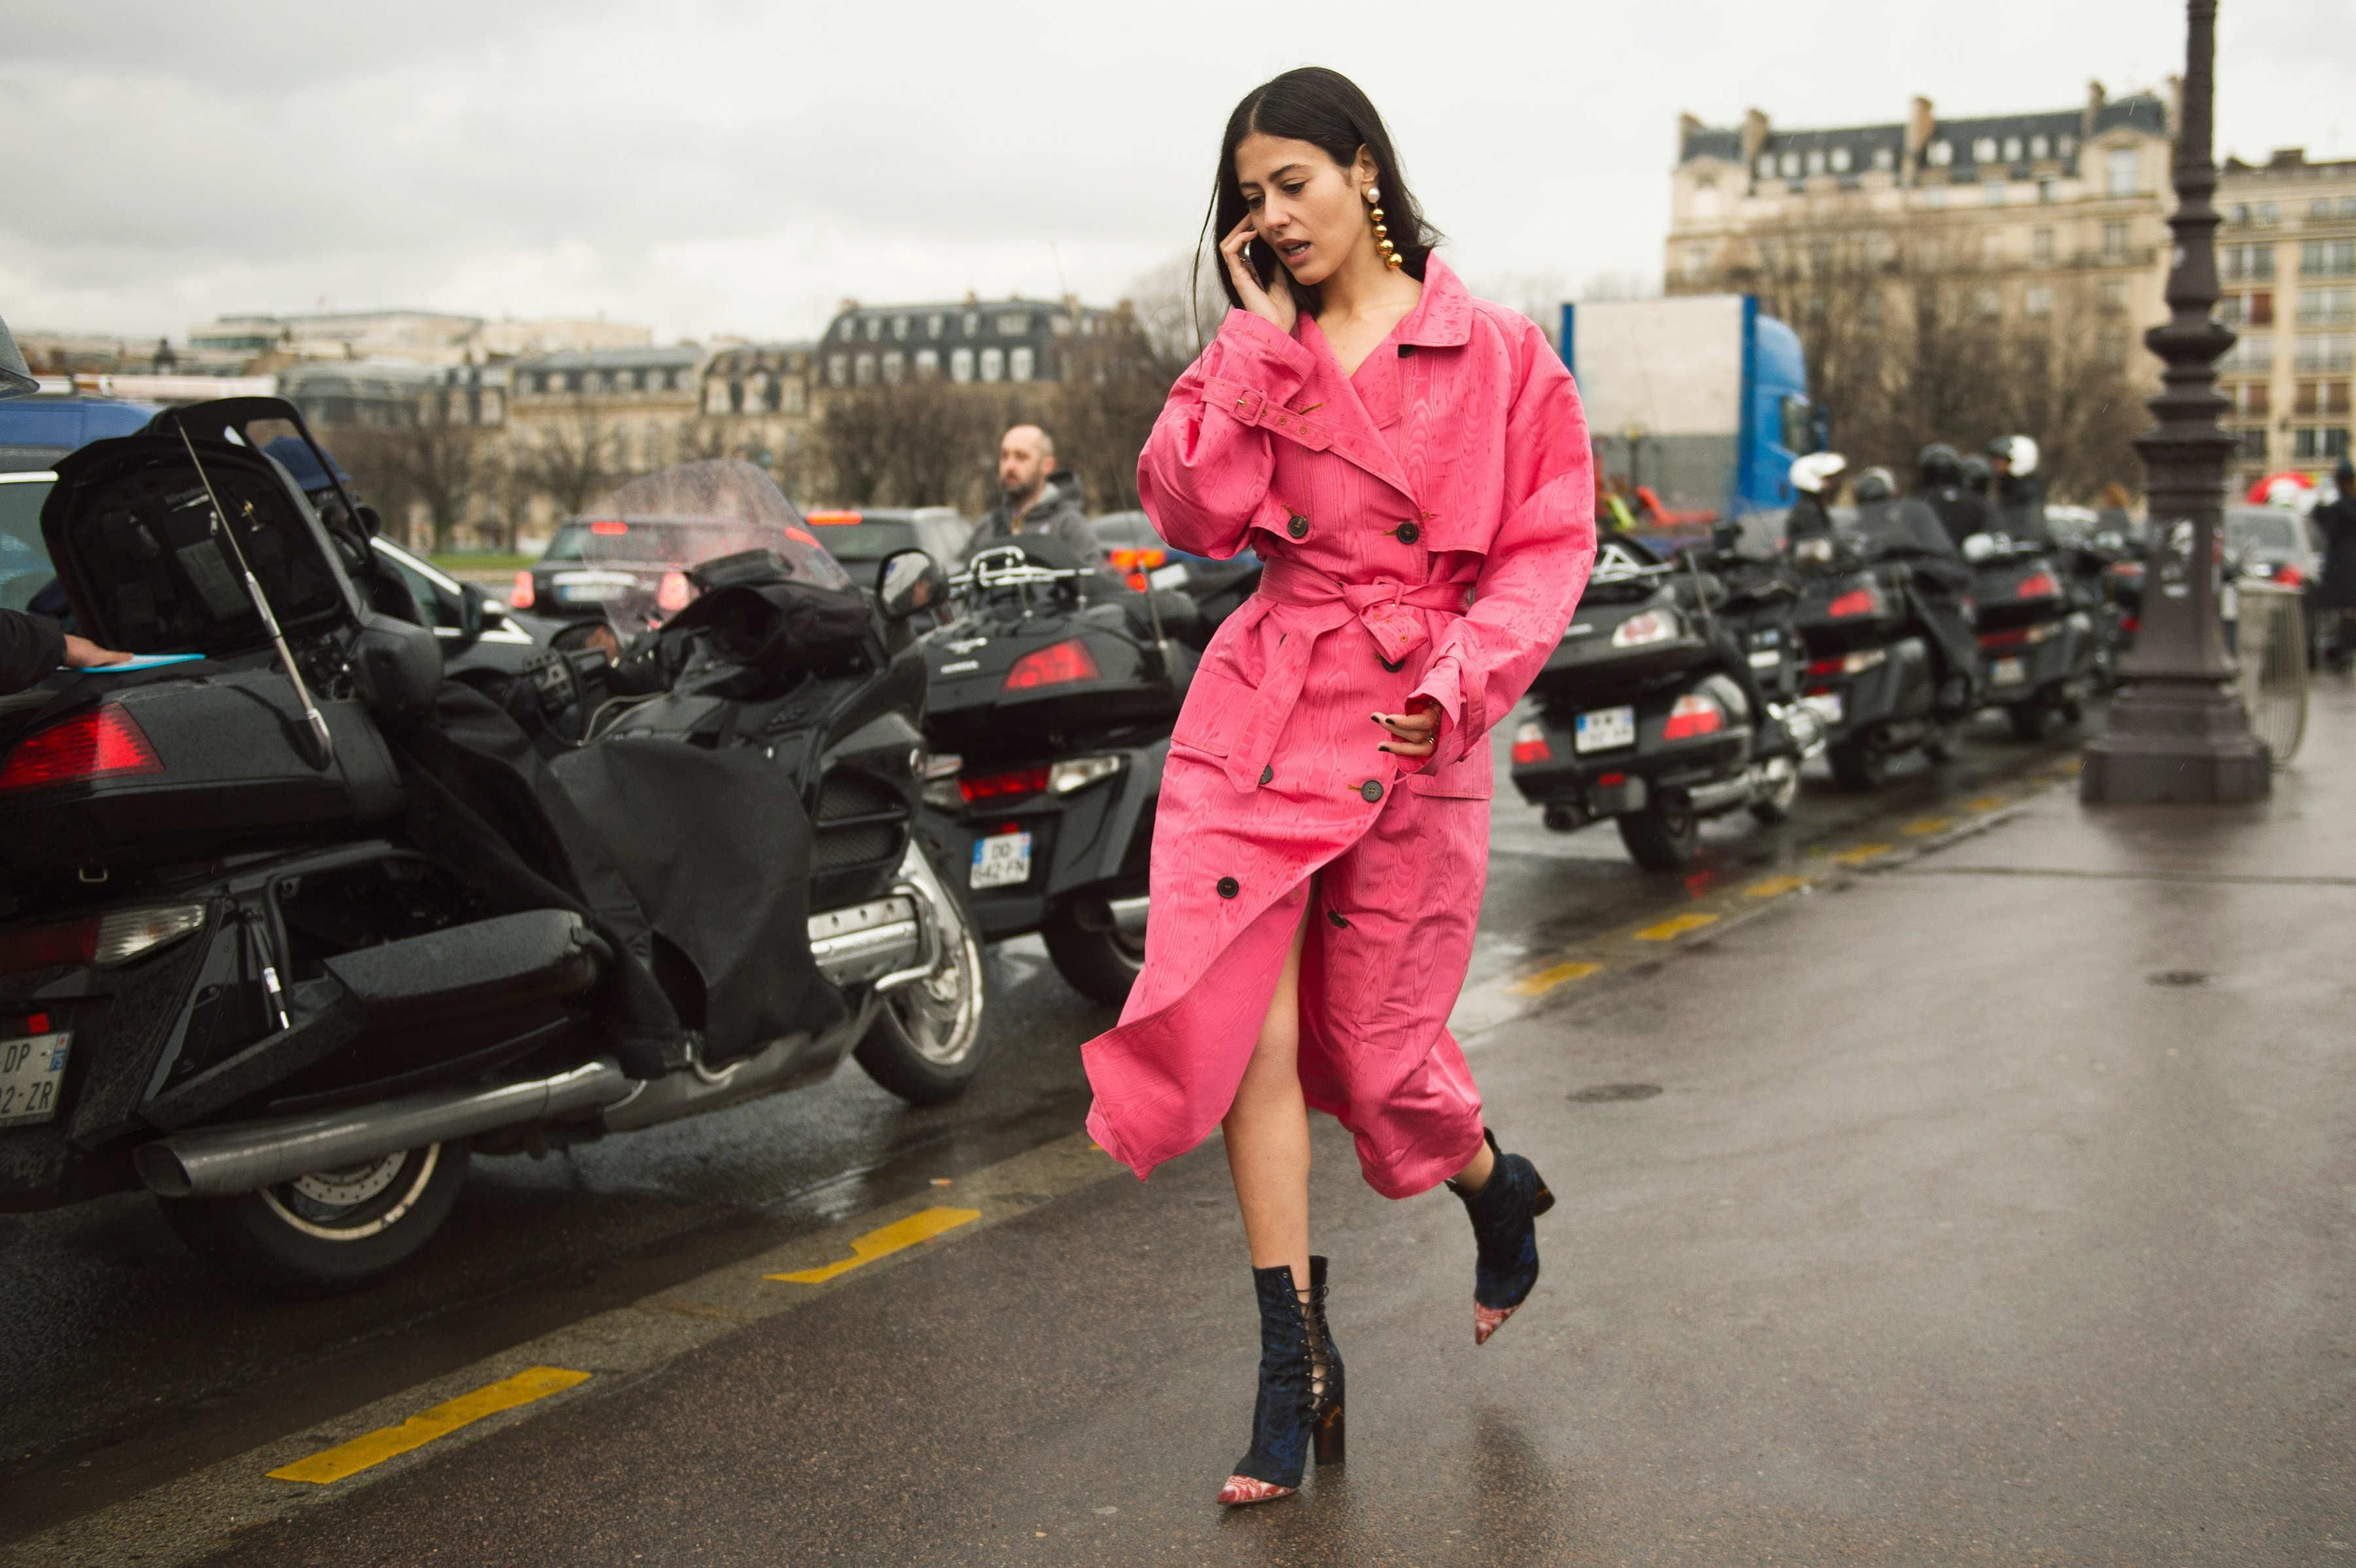 See All the Best Street Style From Paris Couture: Gilda Ambrosio